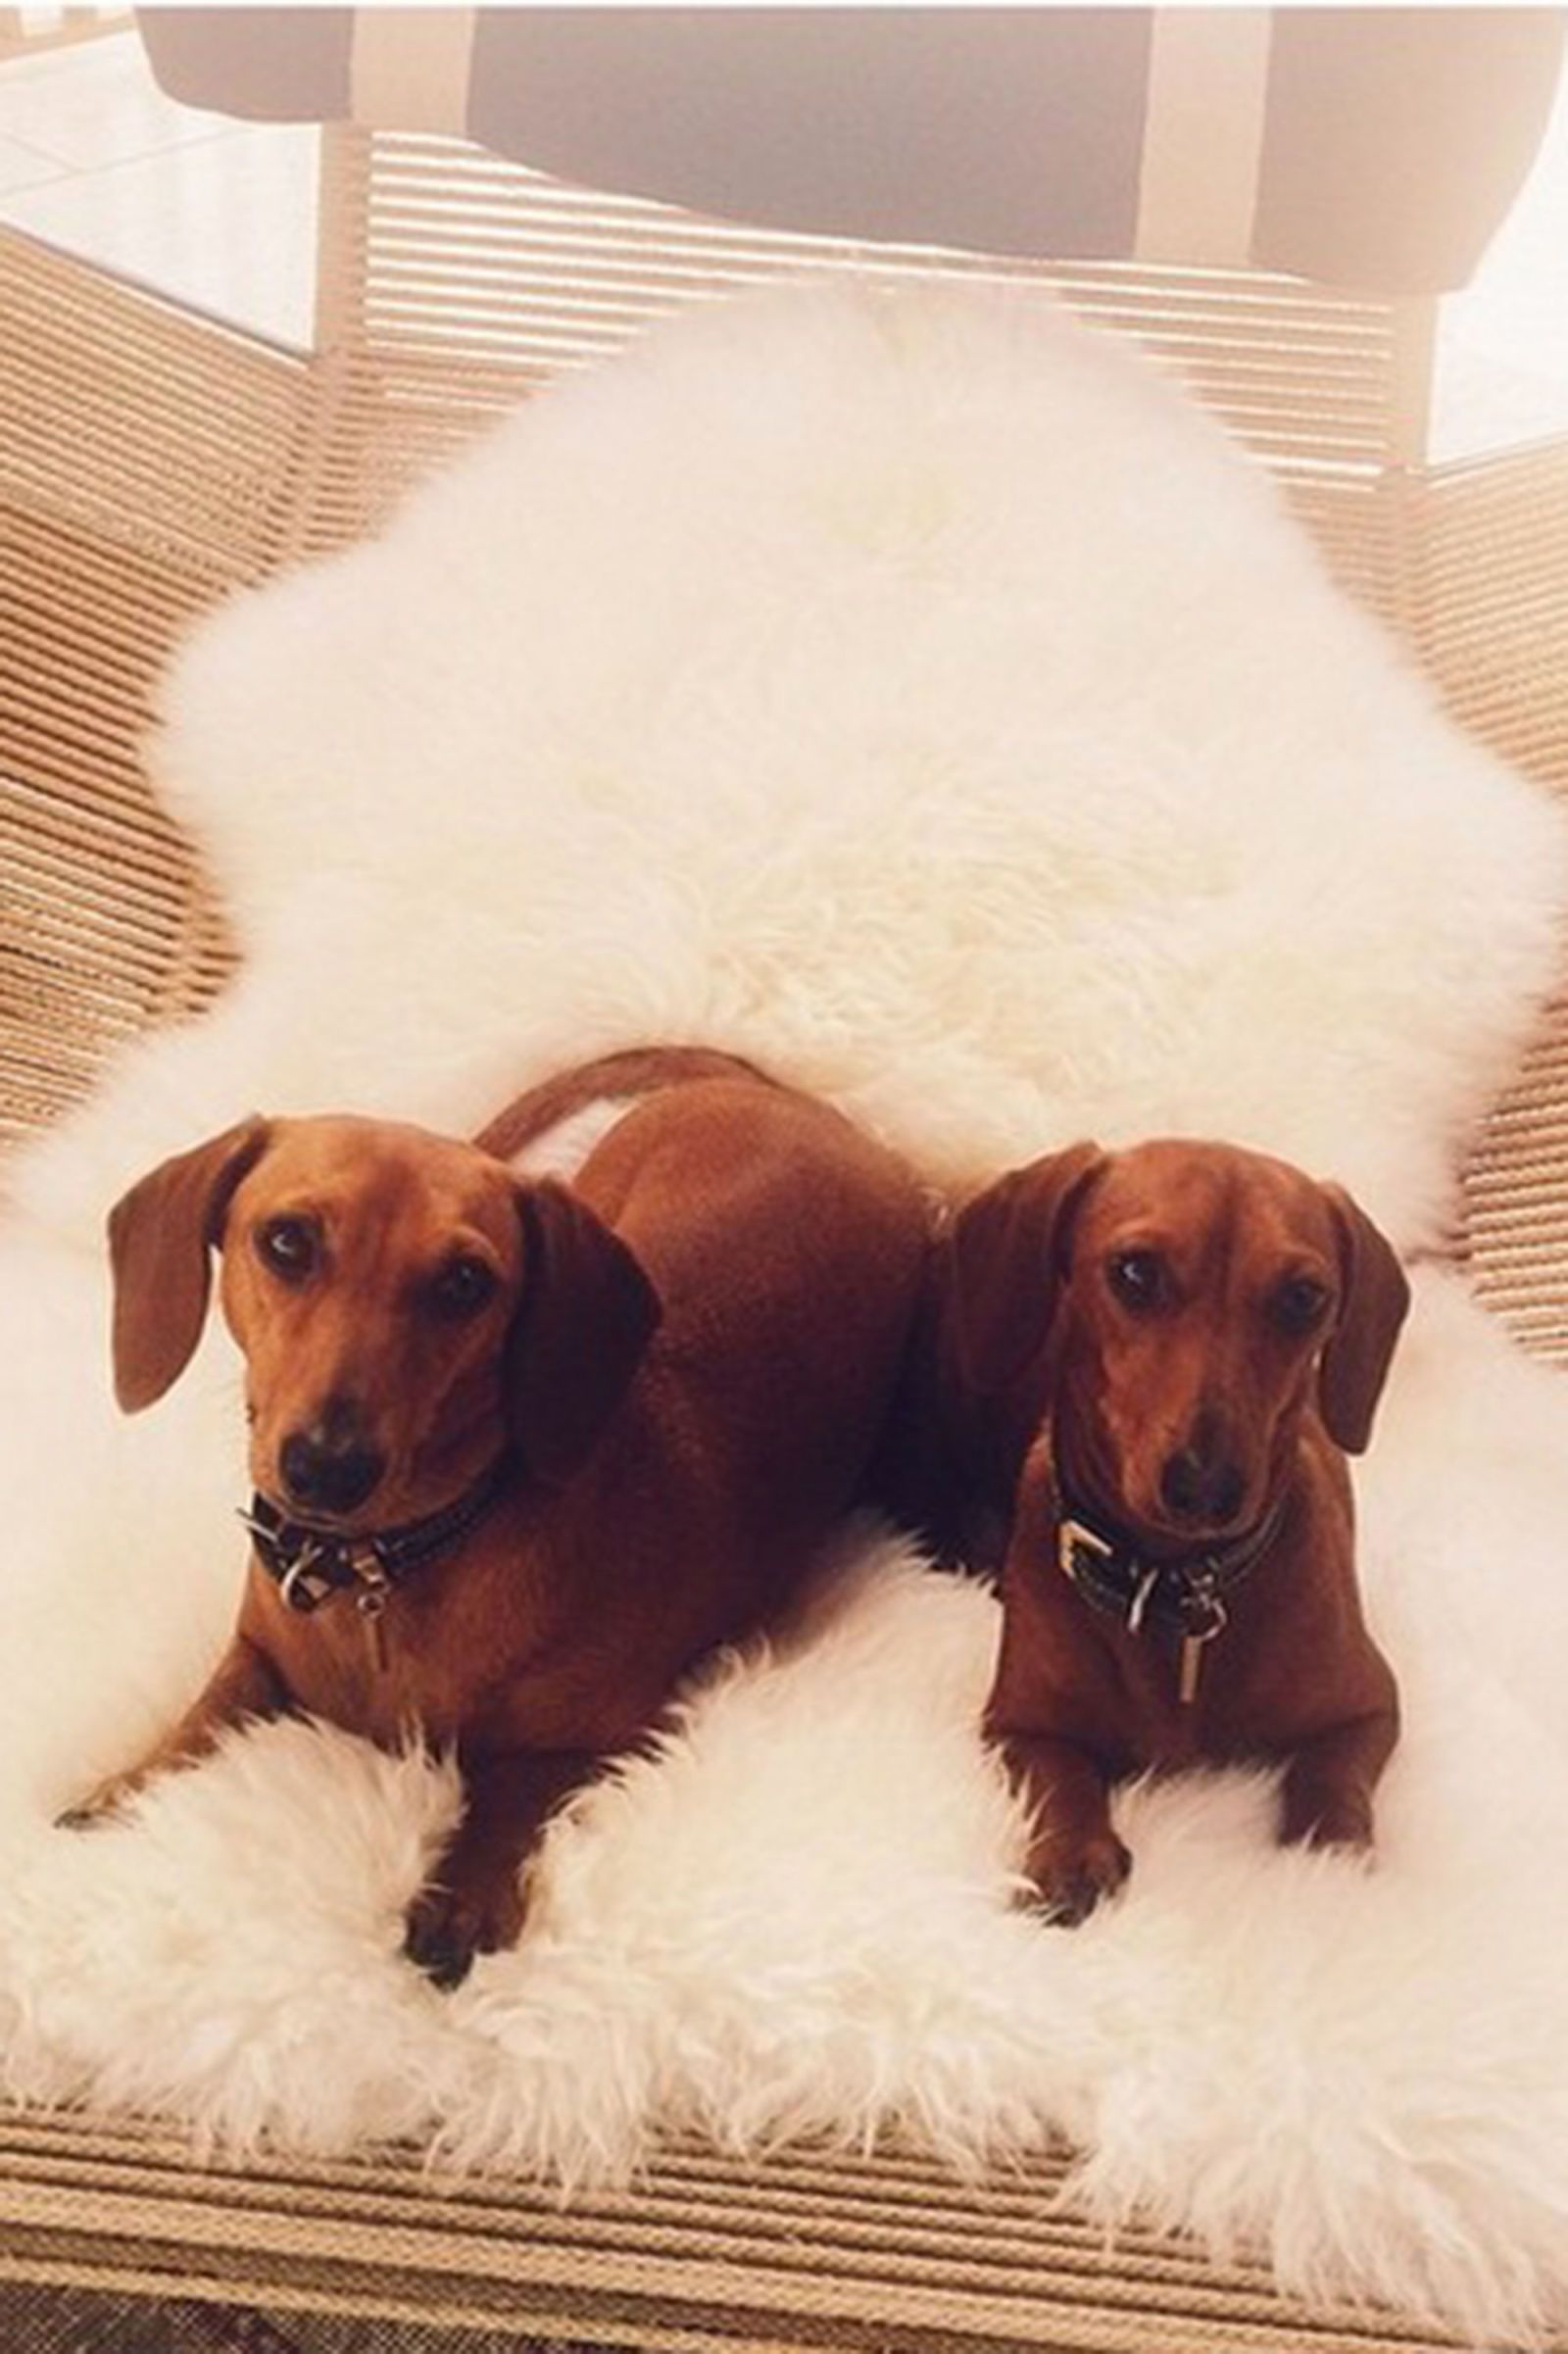 PetaPorter Dogs in Fashion Dachshund love, Weenie